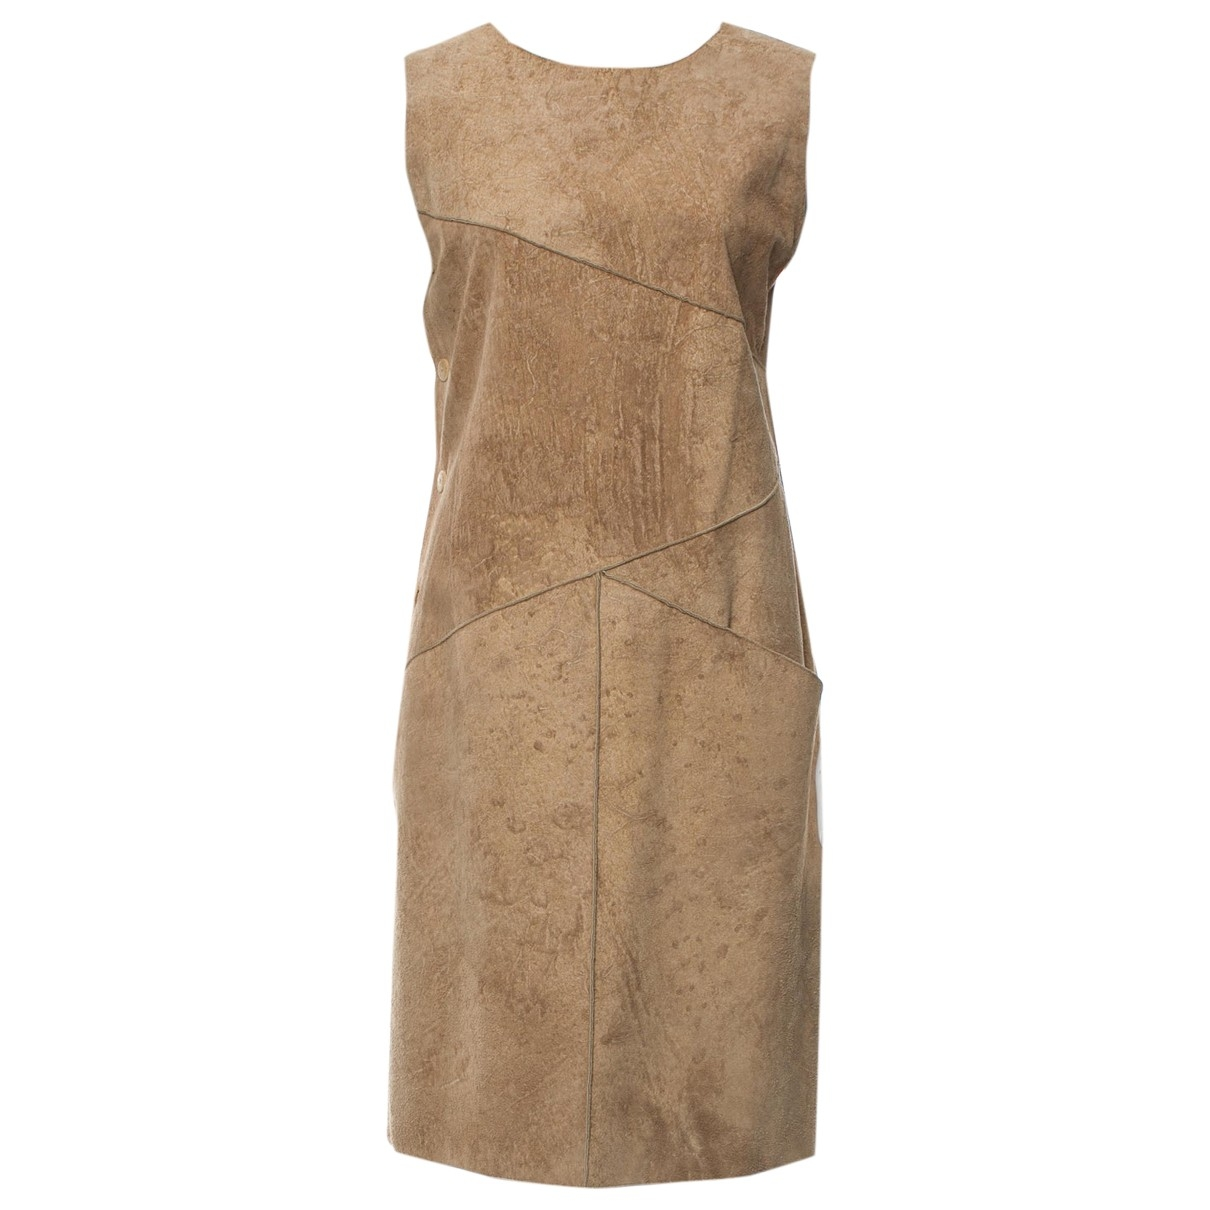 Chanel \N Kleid in  Beige Veloursleder